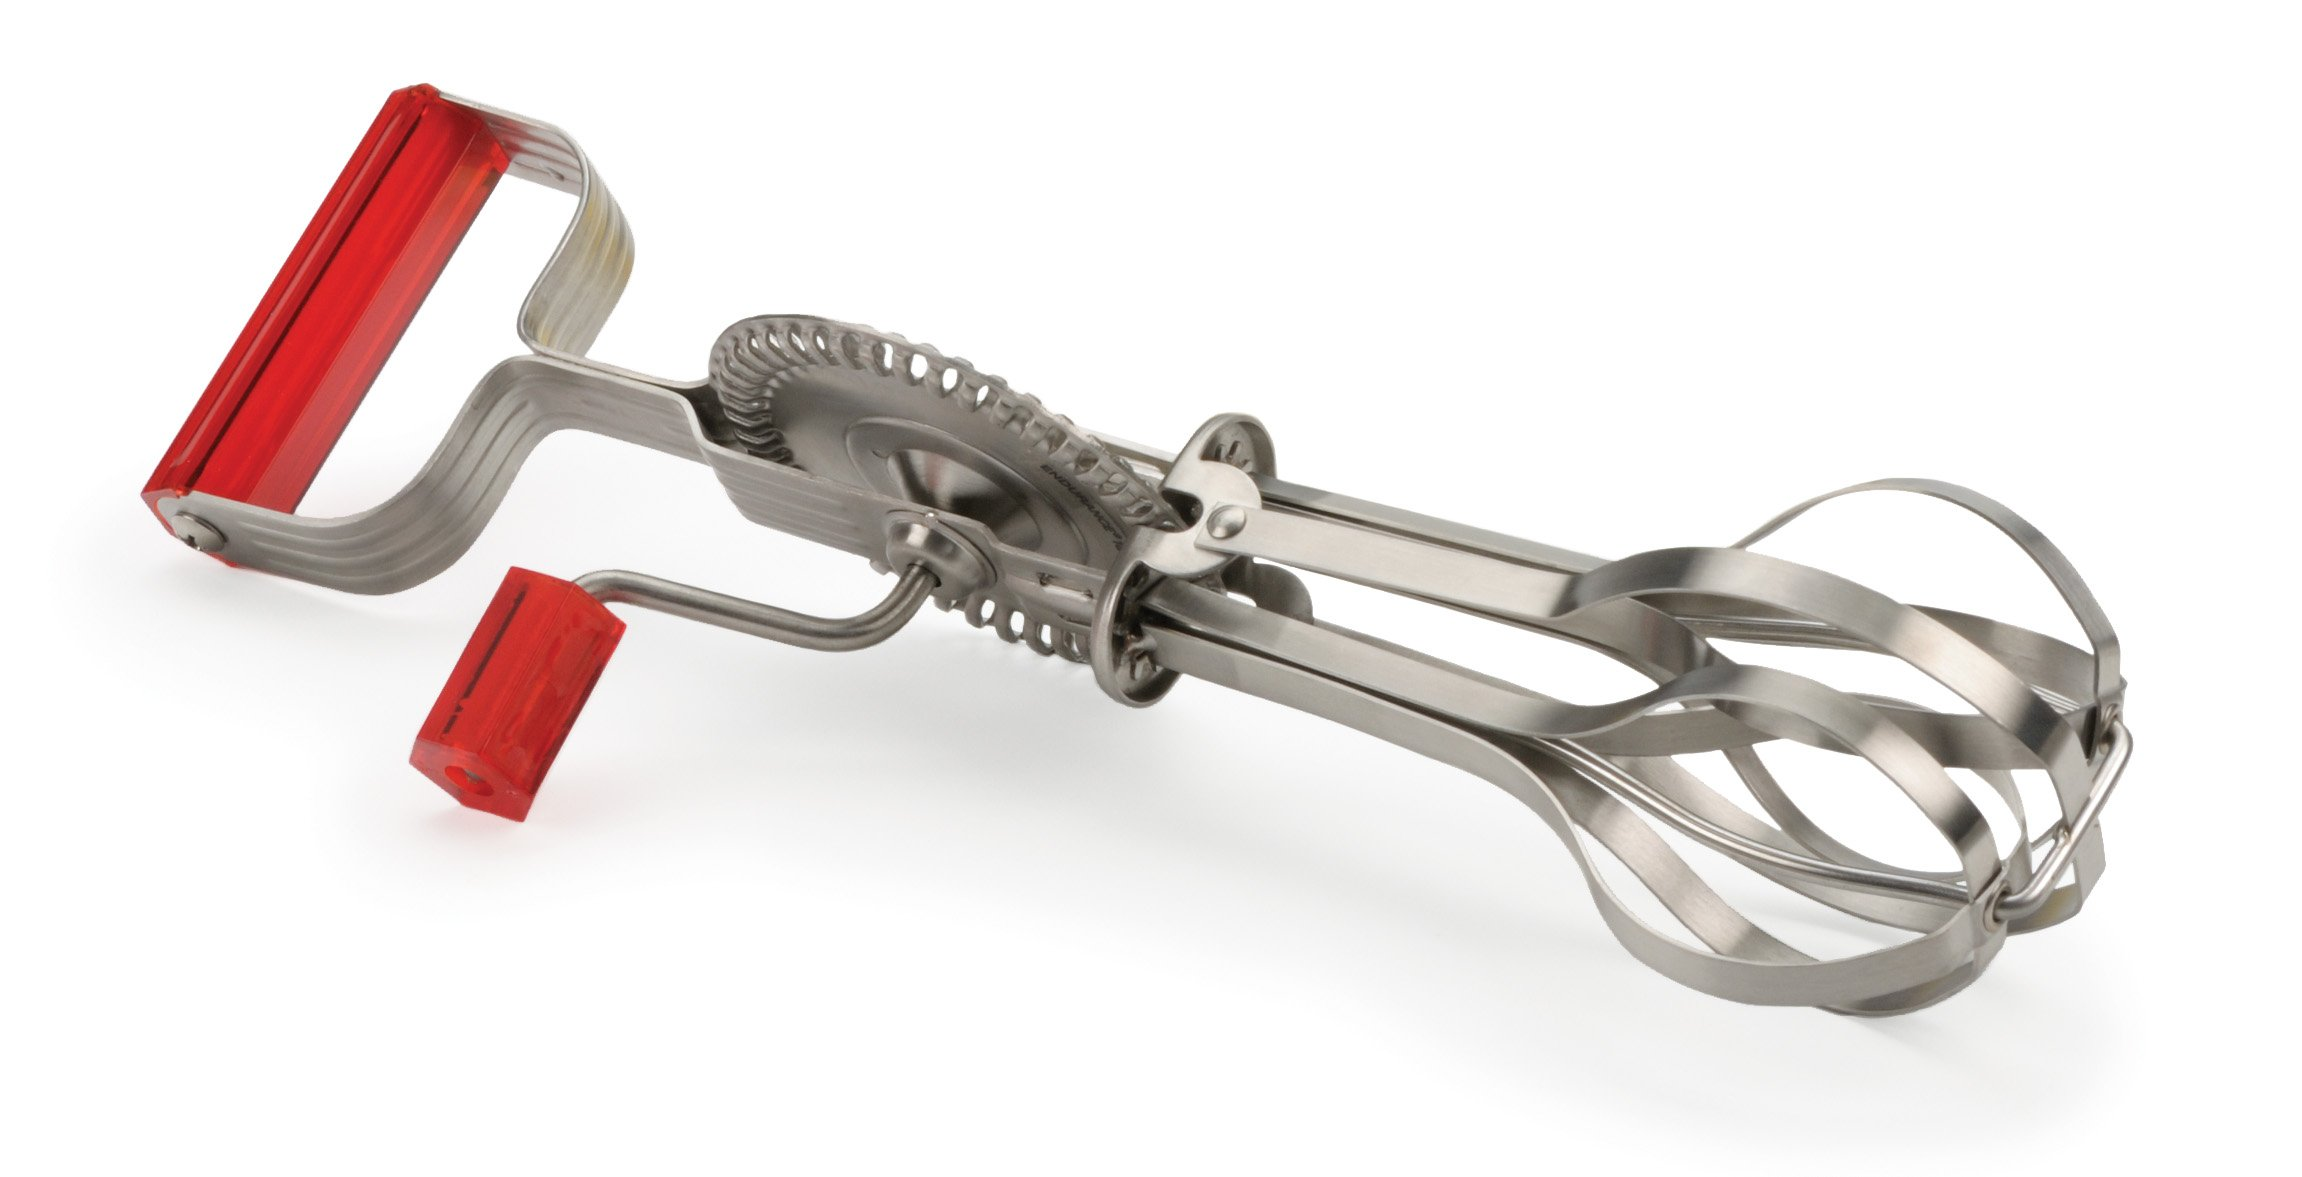 Stainless Steel SCI Scandicrafts Egg Beater with Soft Grip